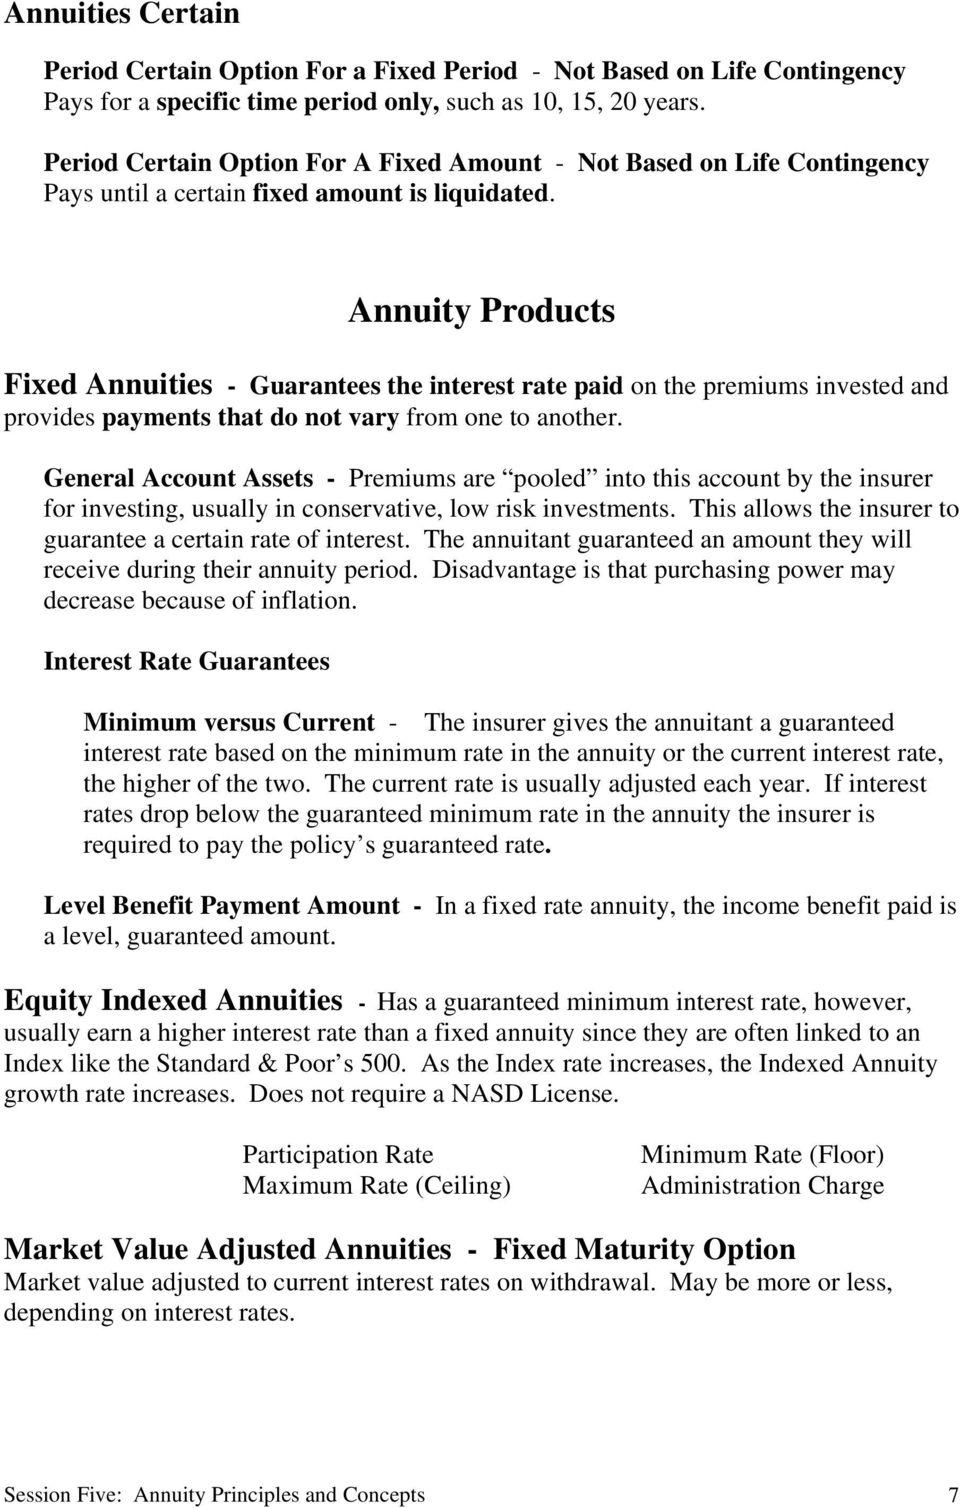 Annuity Products Fixed Annuities - Guarantees the interest rate paid on the premiums invested and provides payments that do not vary from one to another.